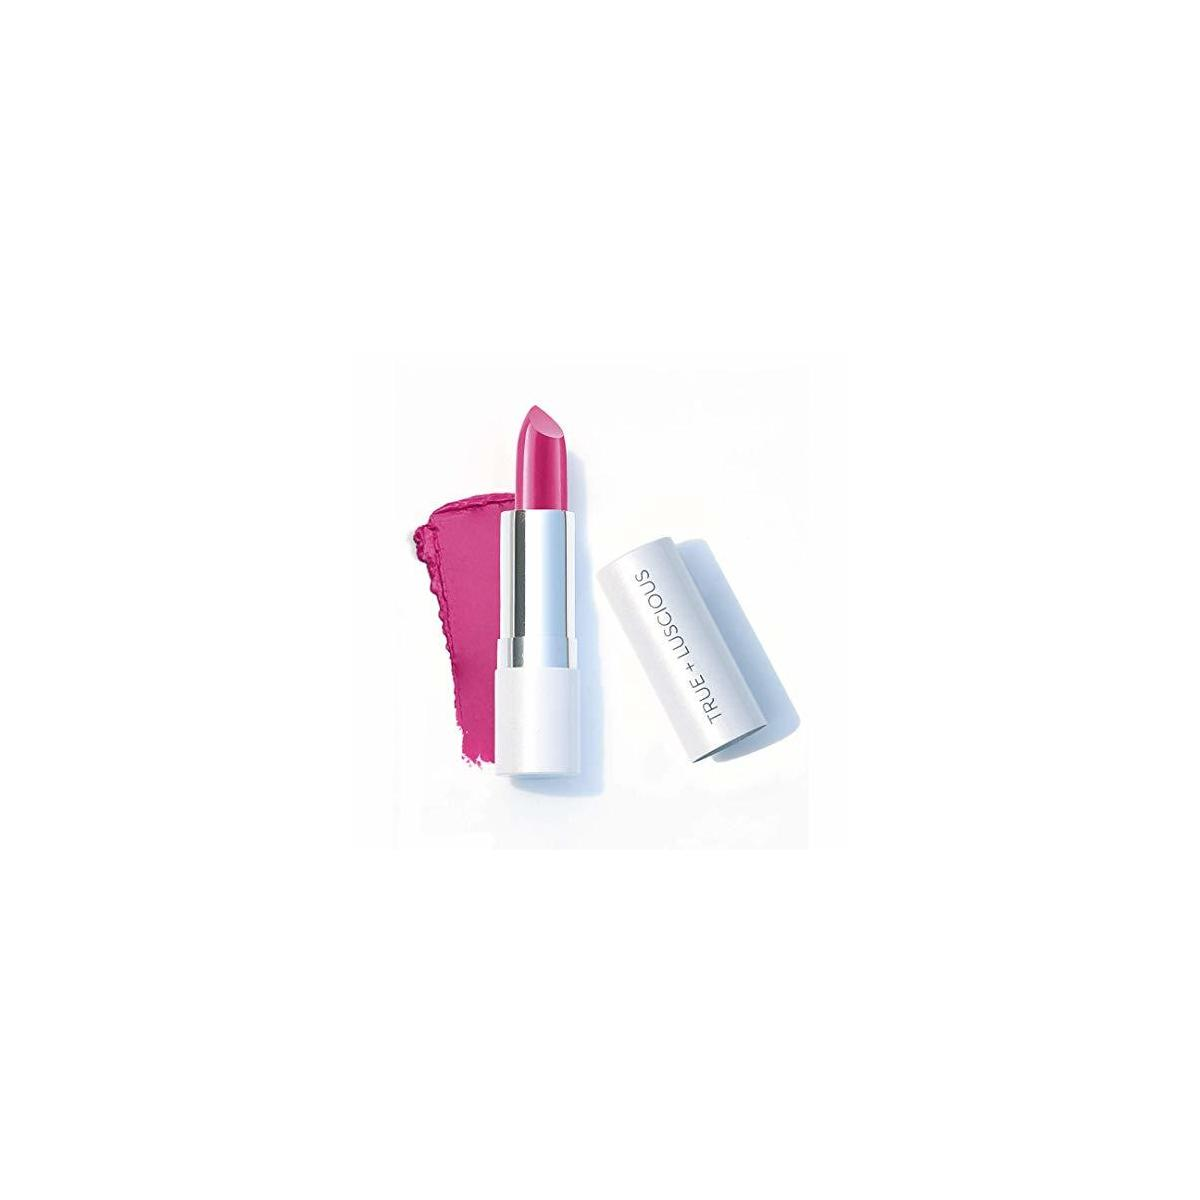 Super Moisture Lipstick by True + Luscious - Clean Formula, Smooth and Hydrating - Vegan and Cruelty Free Lipstick, Non Toxic and Lead Free Shade: Wild Rose - 0.12 oz